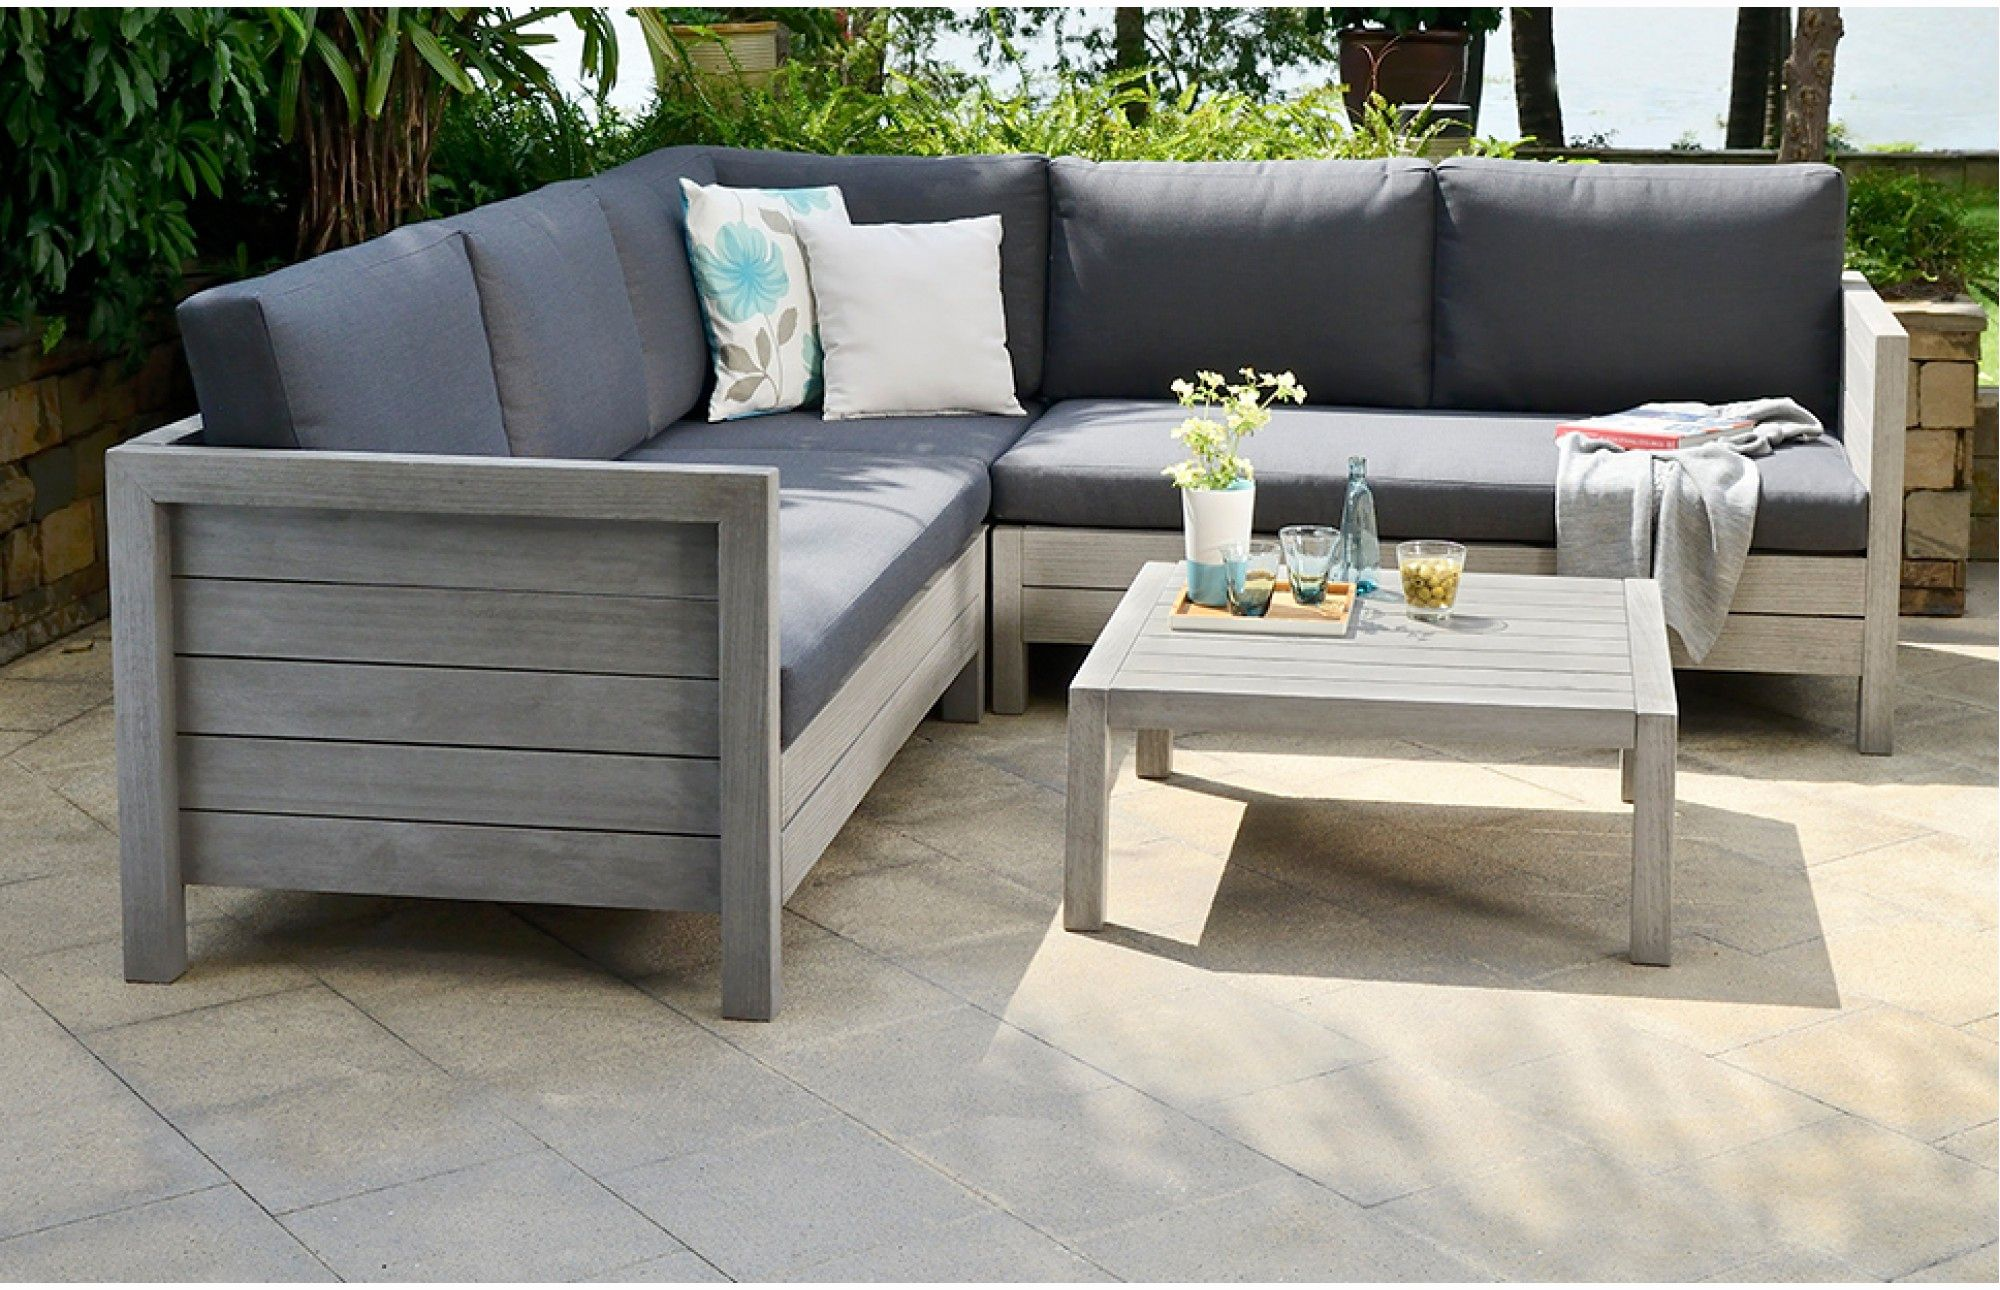 Good Corner Sofa Outdoor Furniture Image Phenomenal Corner Outdoor